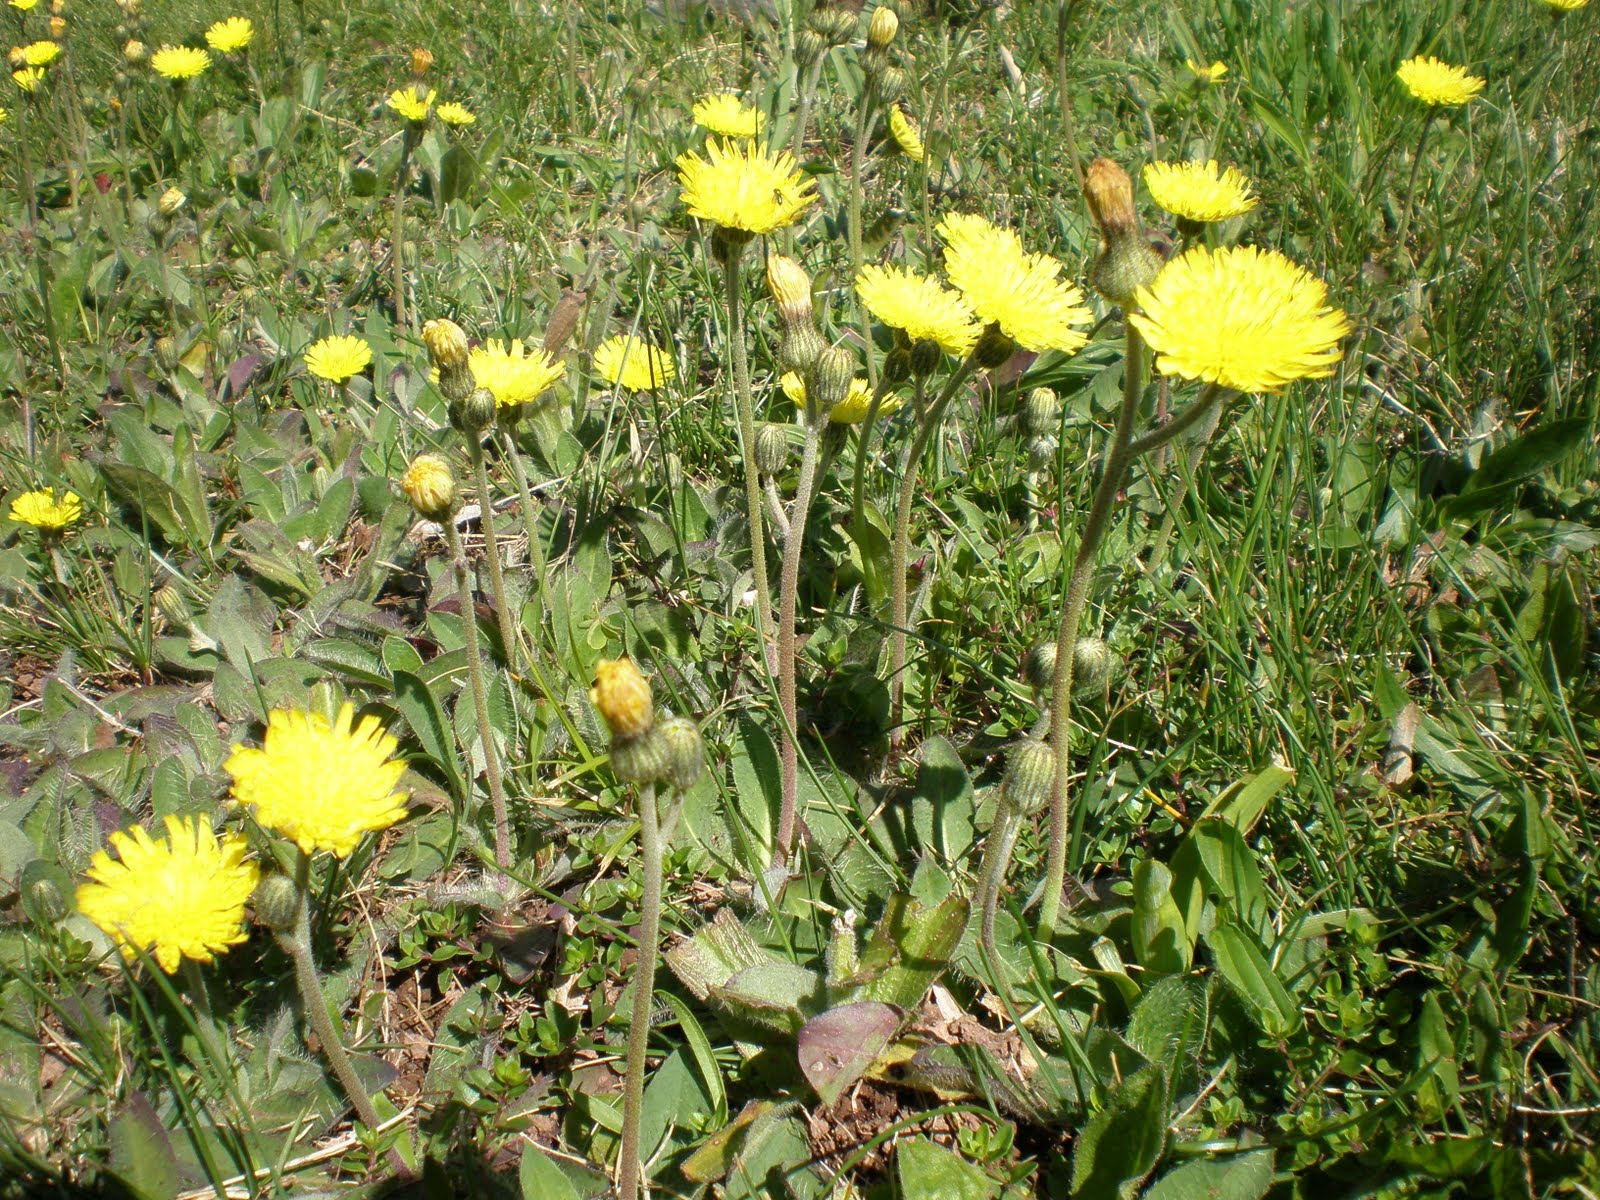 Weed of the week yellow hawkweed hieracium pratense tausch penn weed of the week yellow hawkweed hieracium pratense tausch mightylinksfo